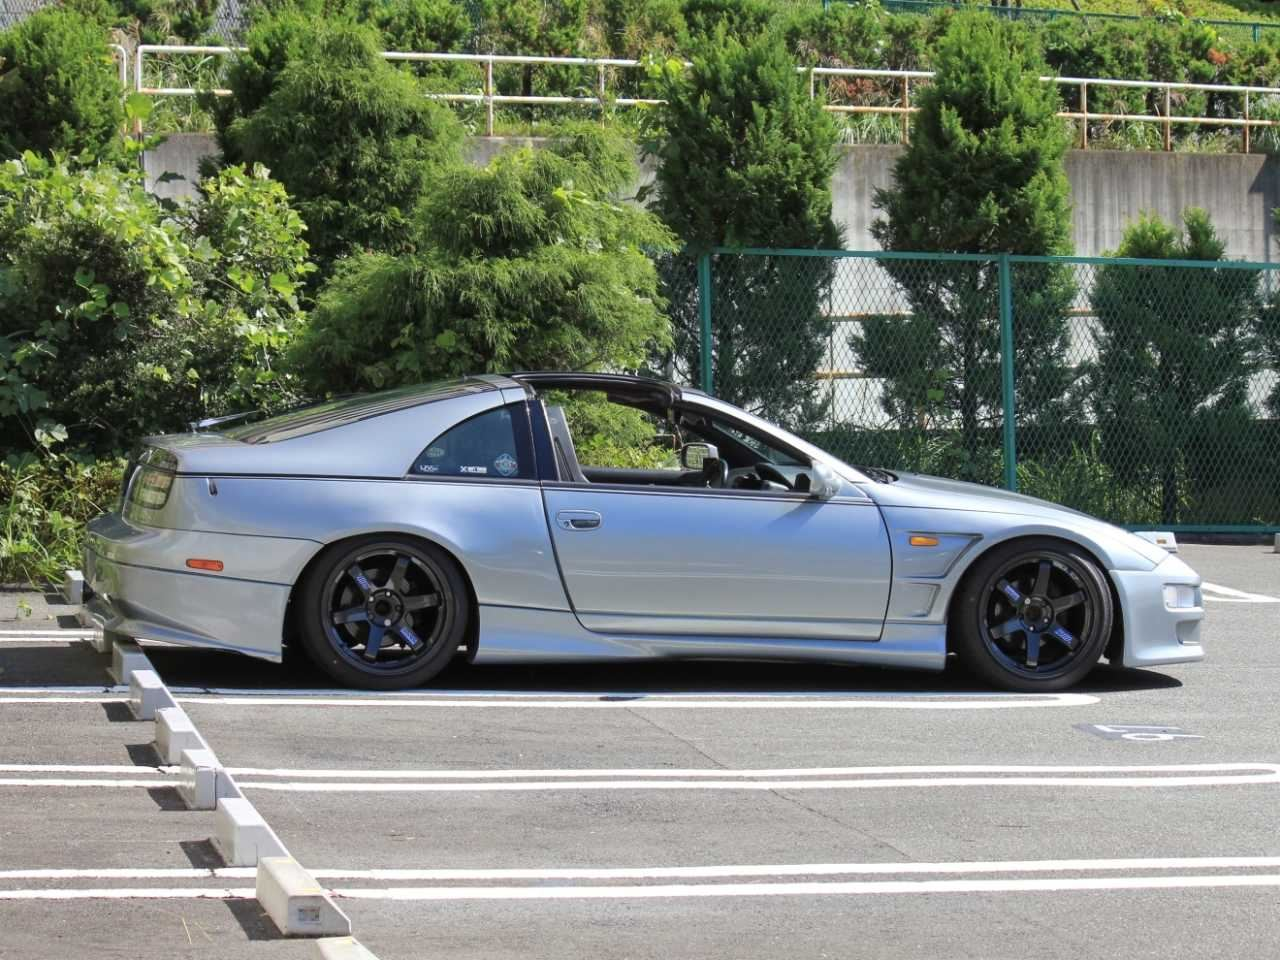 Z Owners Step In Page 16 Forums Nissan 240sx Datsun 300zx Turbo Exhaust Diagram Category Silvia And Fairlady Car Forum